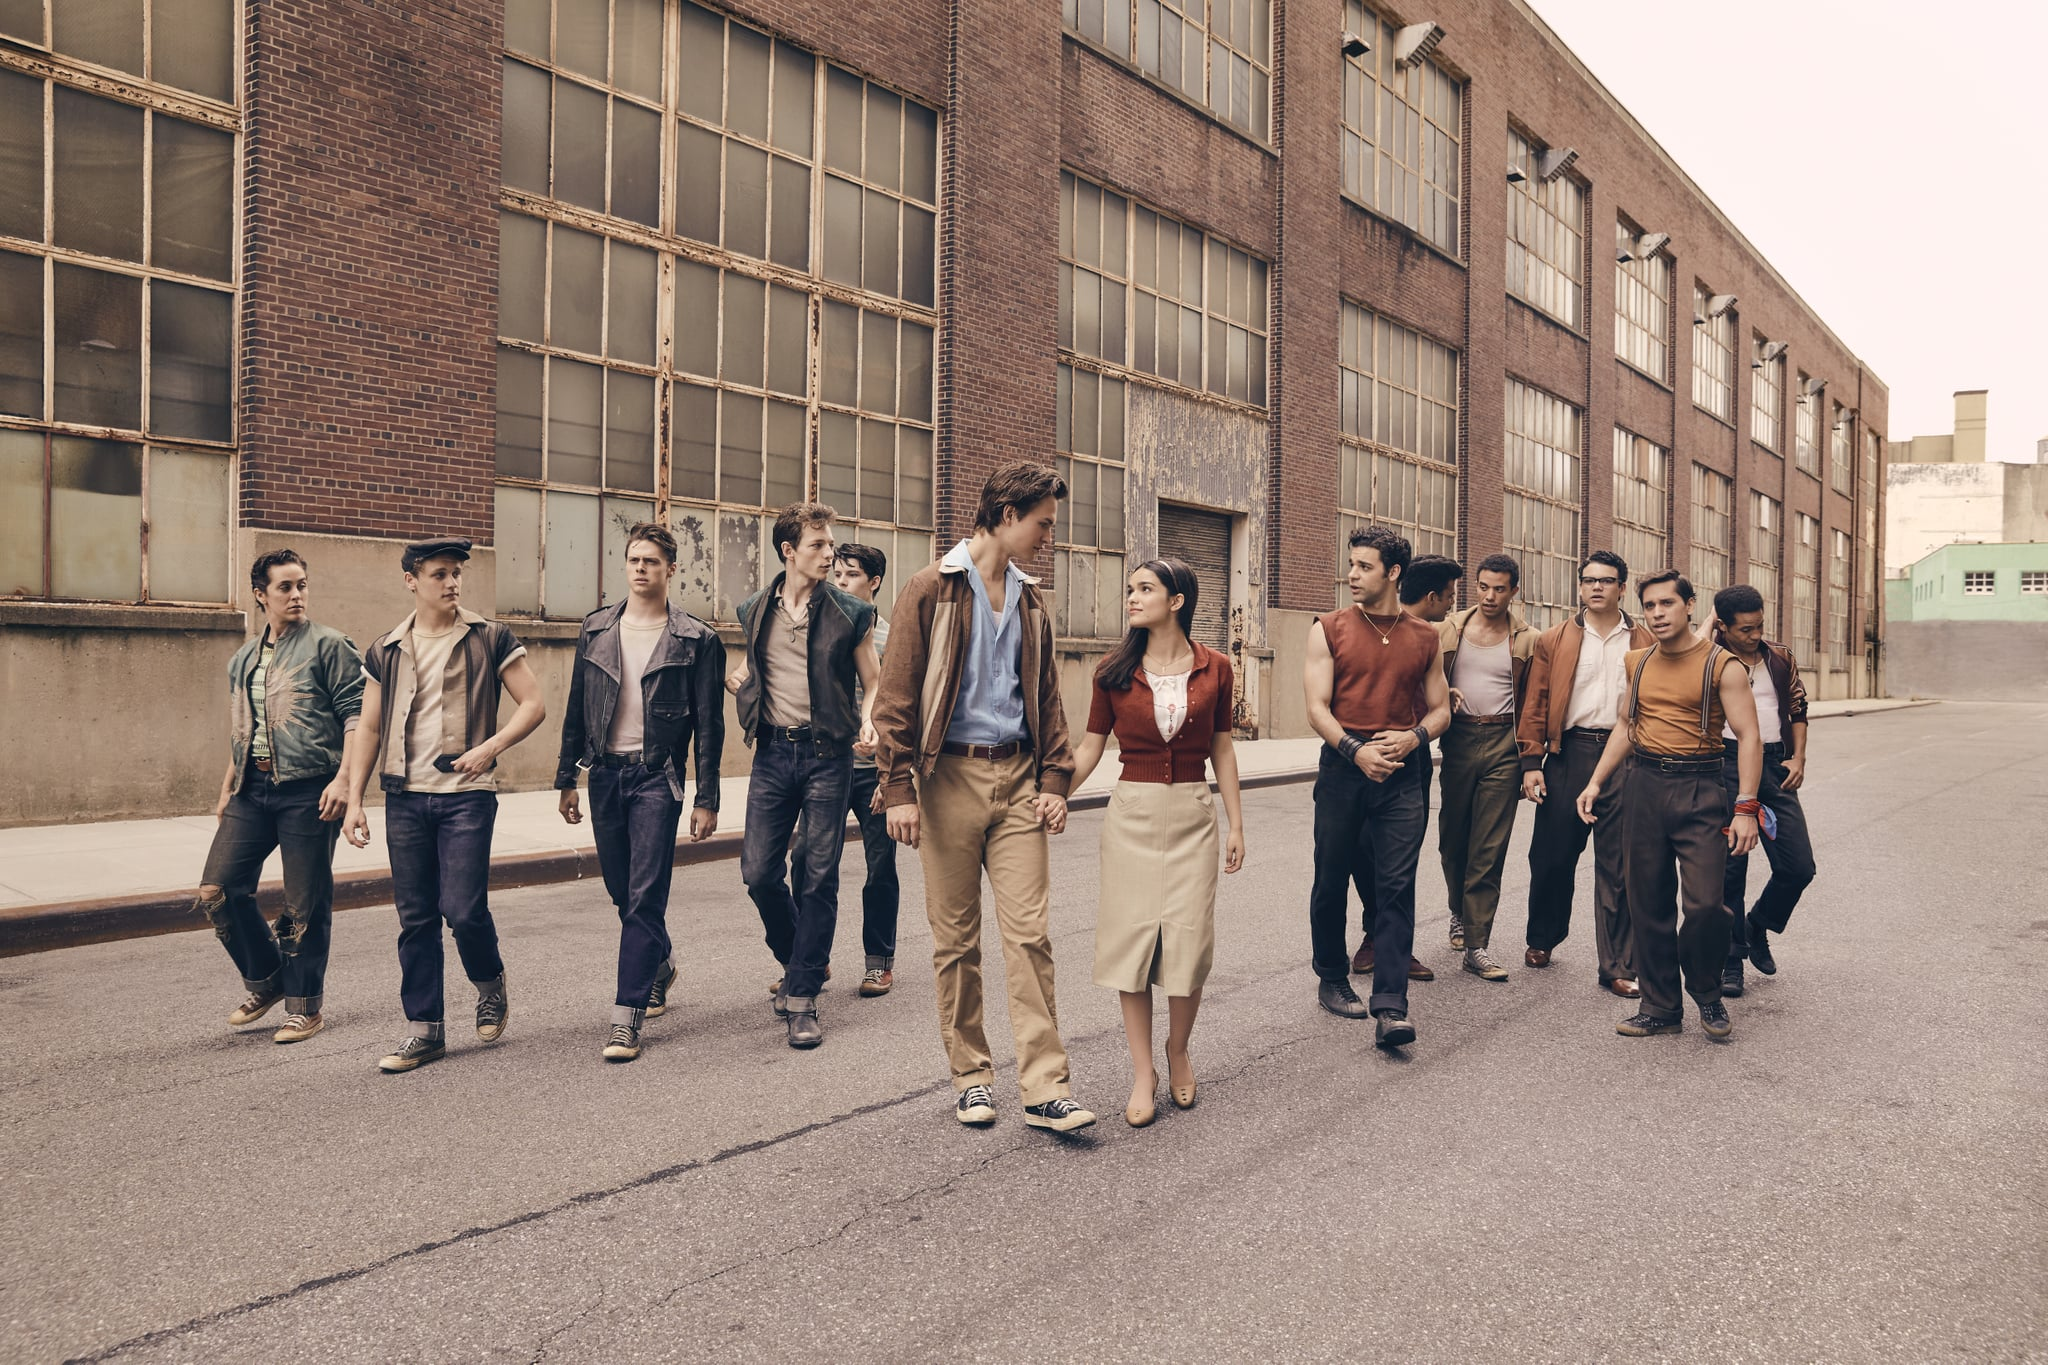 The First Look at Steven Spielberg's West Side Story Remake Is Here, and Alright, We're In